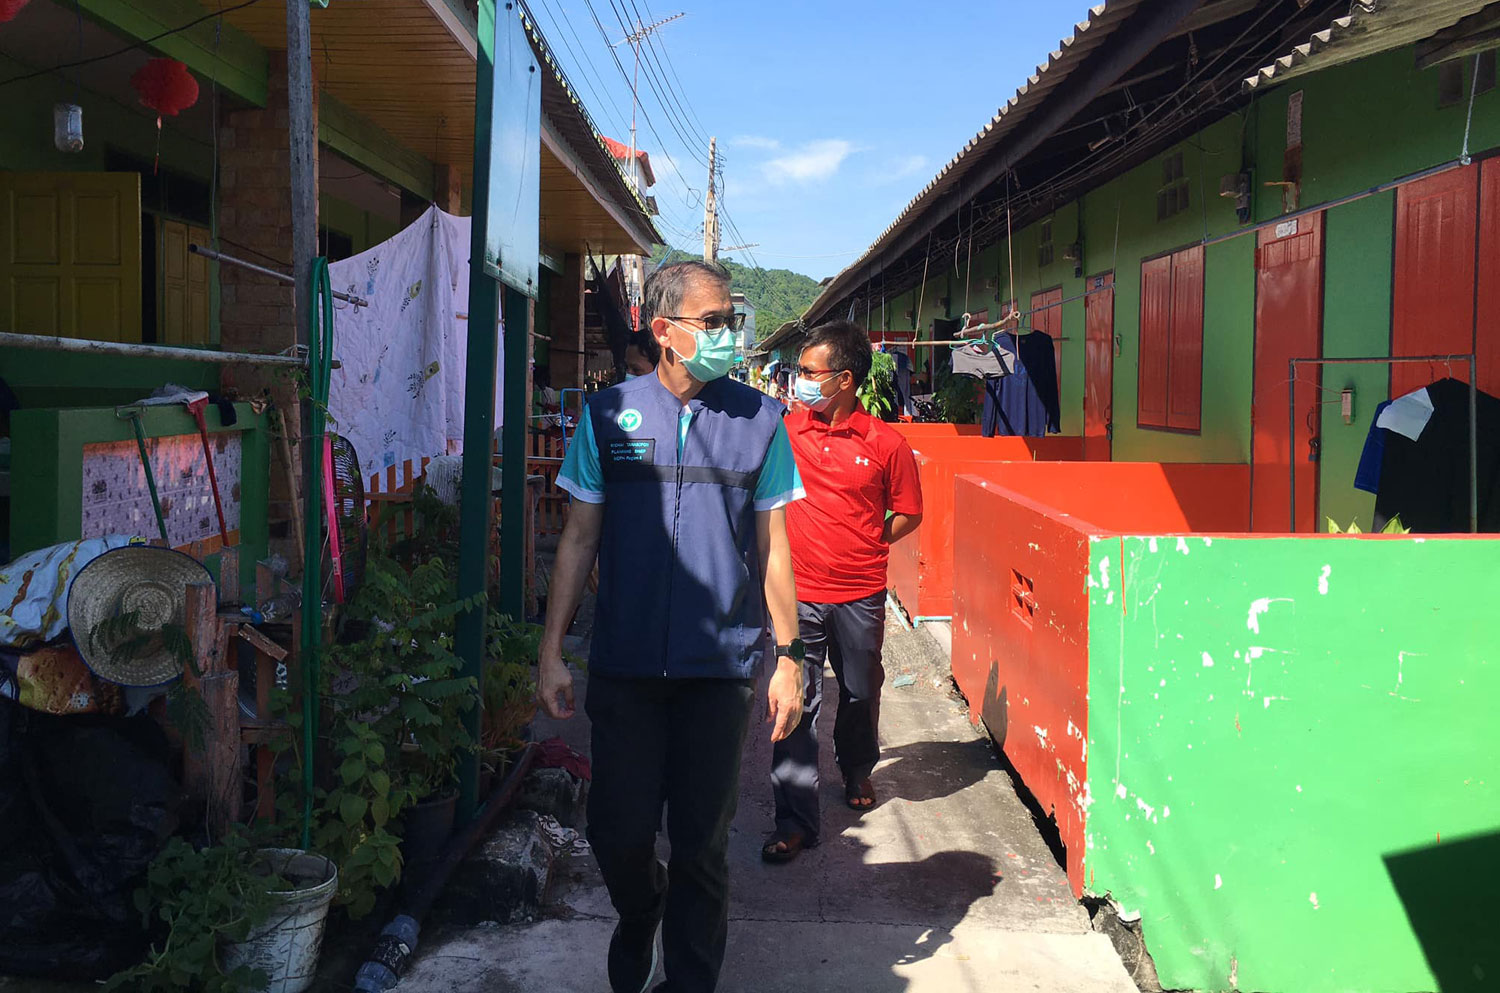 Deputy Chon Buri public health office chief Dr Wichai Thanasophon leads an inspection of living quarters of migrant workers in tambon Bang Sai of Muang district in Chon Buri on Monday. (Photo: Chon Buri public health office)